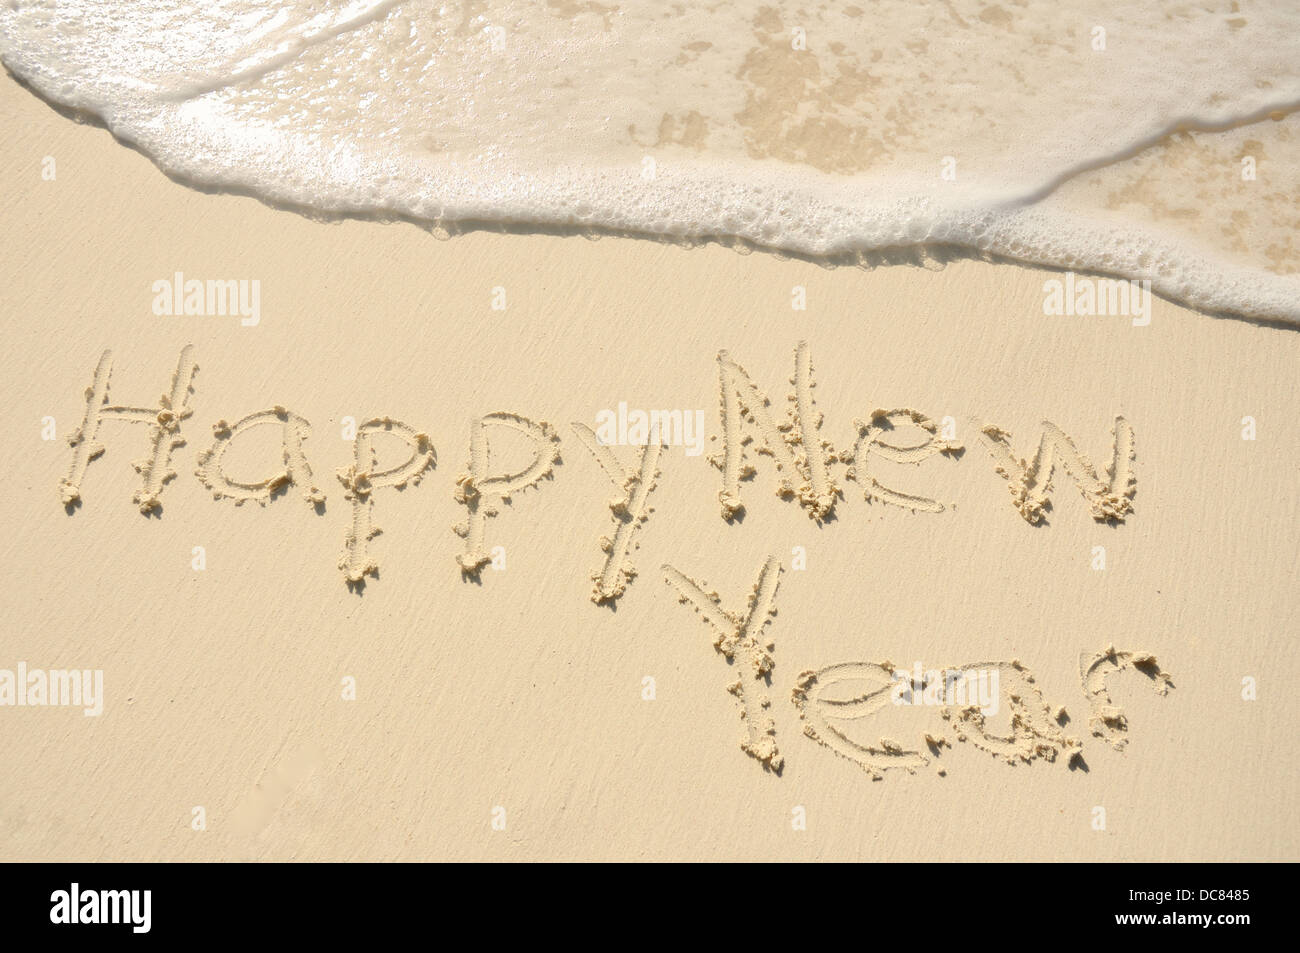 The Phrase 'Happy New Year' Written in the Sand on a Beach - Stock Image